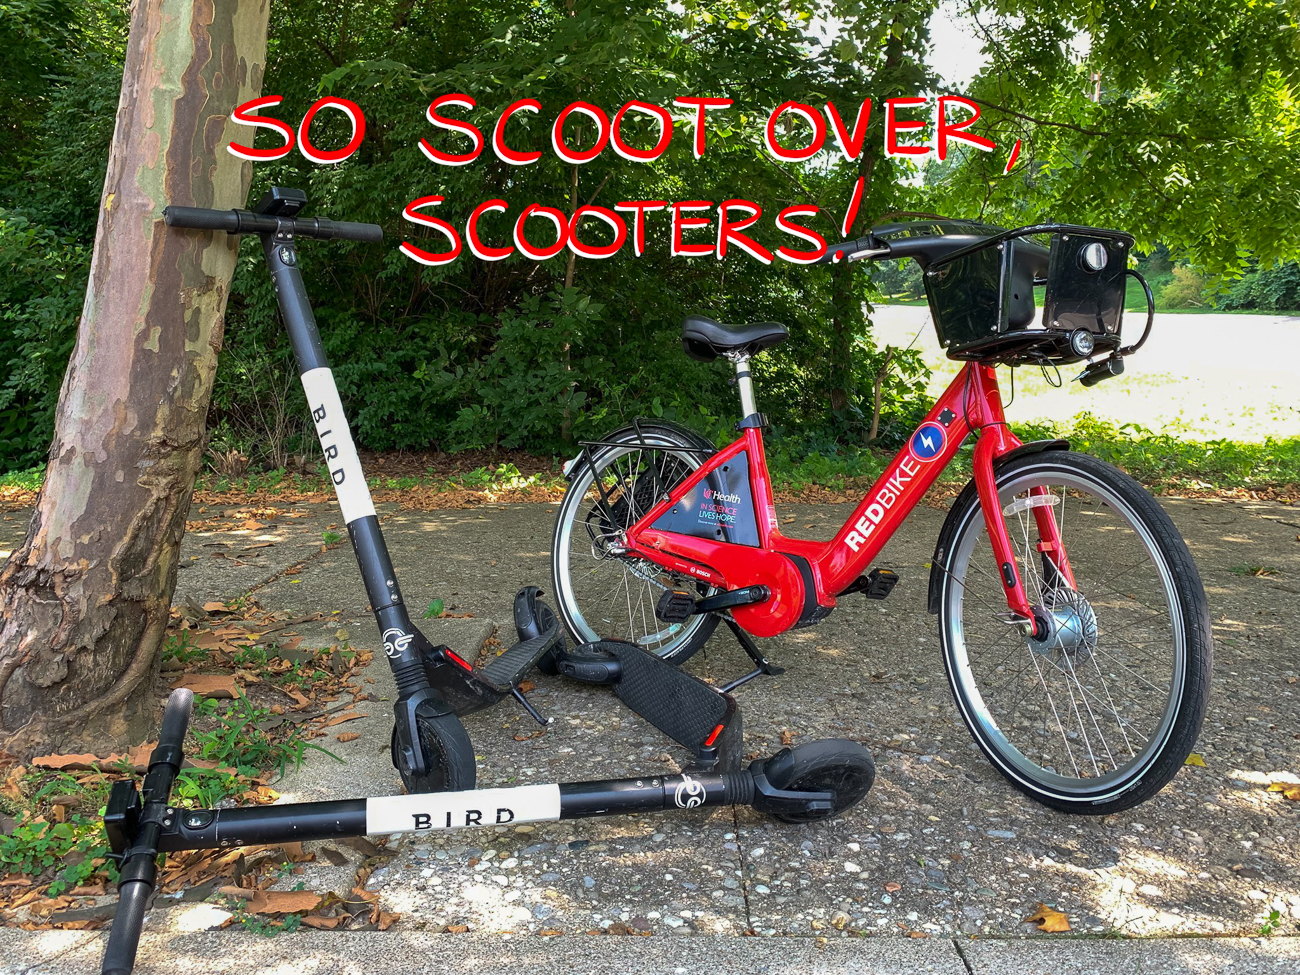 EDITORIAL NOTE: Red Bikes {>} scooters / Image: Phil Armstrong // Published: 7.13.19